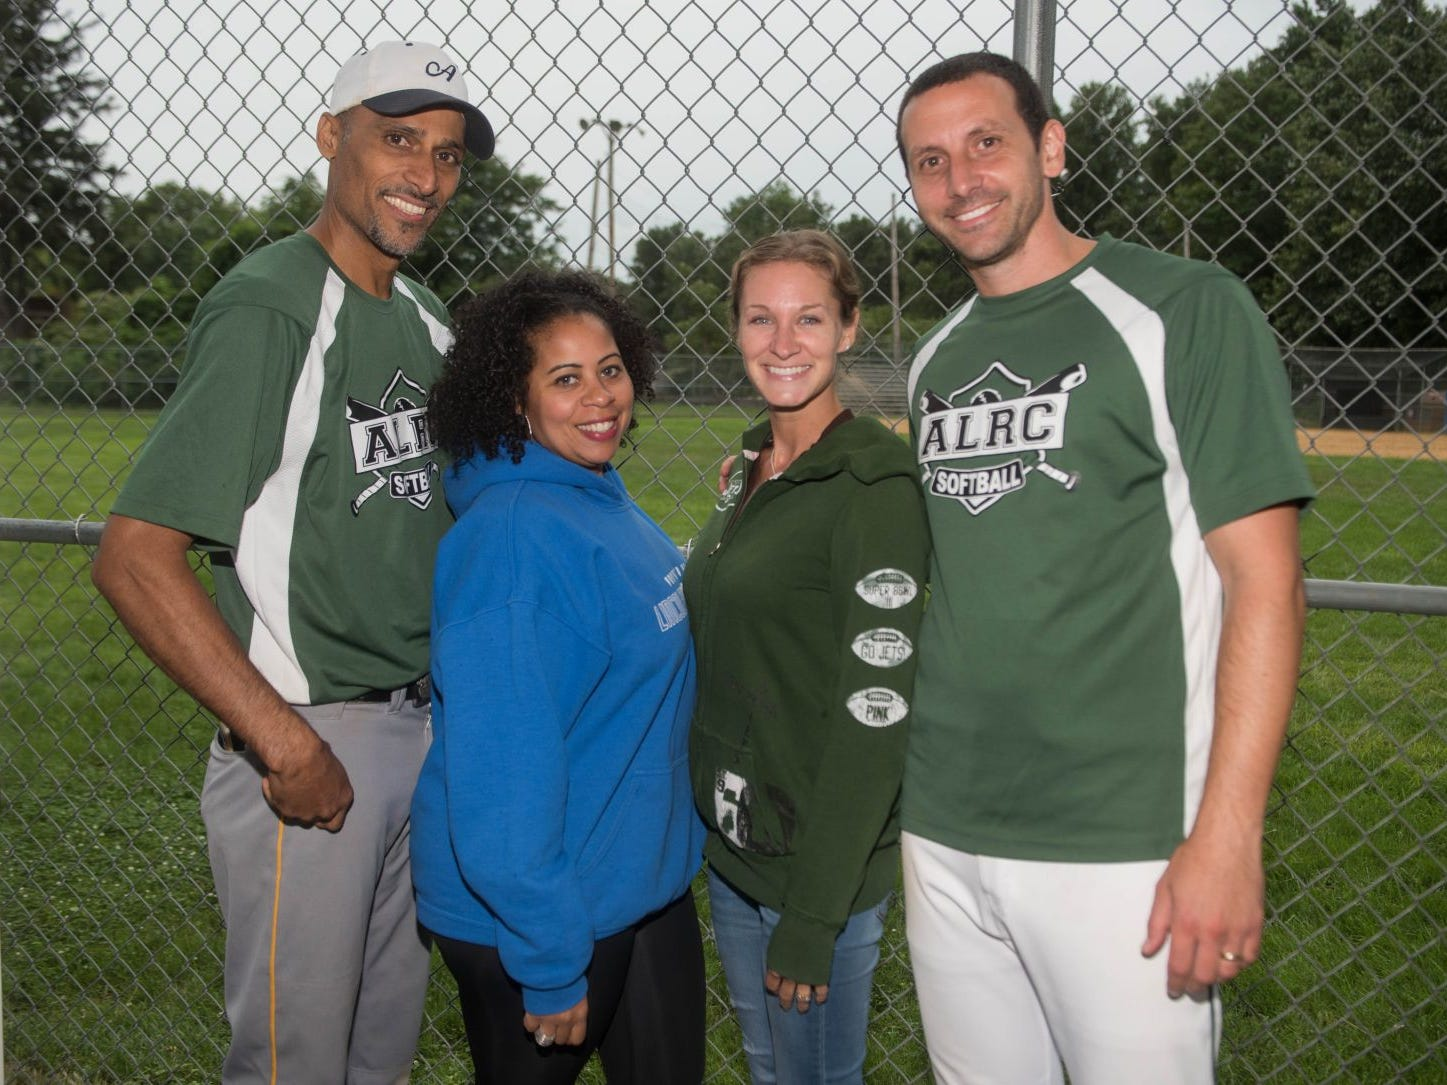 Yrby Gonzalez, Lissette Gonzalez, Alison Botbyl and Scott Botbyl. Mark A. Sasso Memorial Fund hosted its 10th annual Softball Fundraiser this past Saturday at Wagaraw Baseball Field in Hawthorne. Don La Greca was joined by many of his fellow ESPN personalities and celebrity guests to play against the winning ALRC team from the round robin tournament that took place throughout the day. 09/08/2018